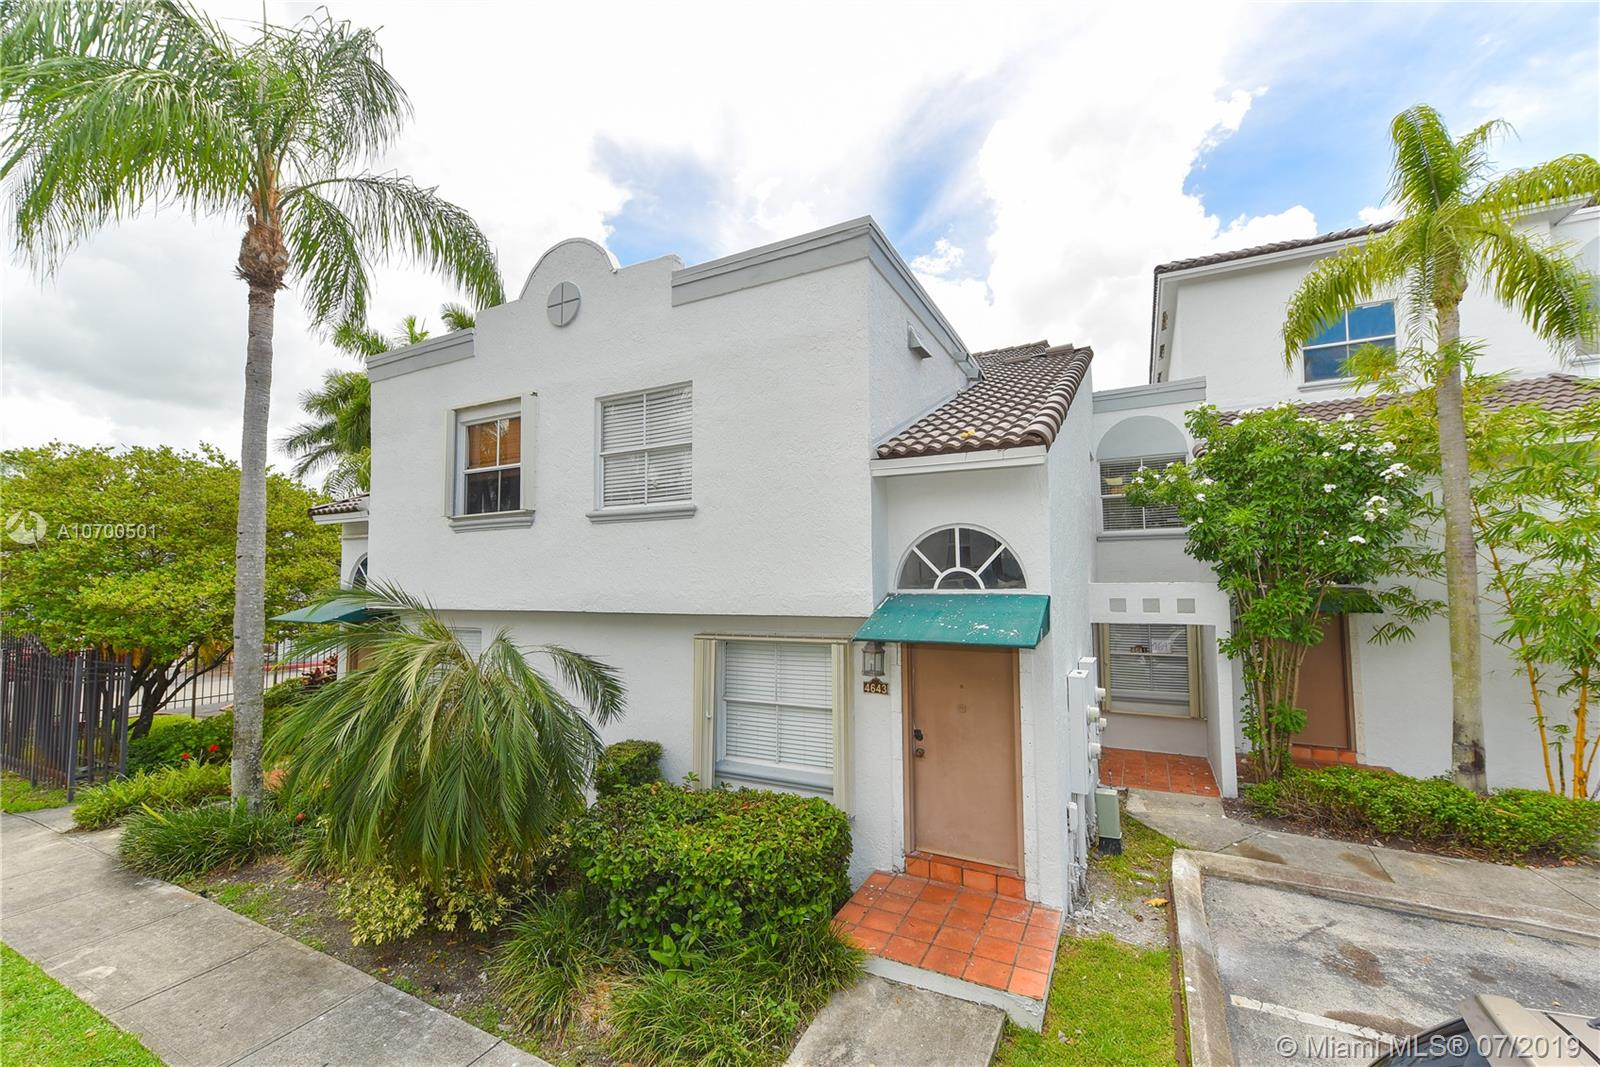 4643 NW 97 Ct #19 For Sale A10700501, FL